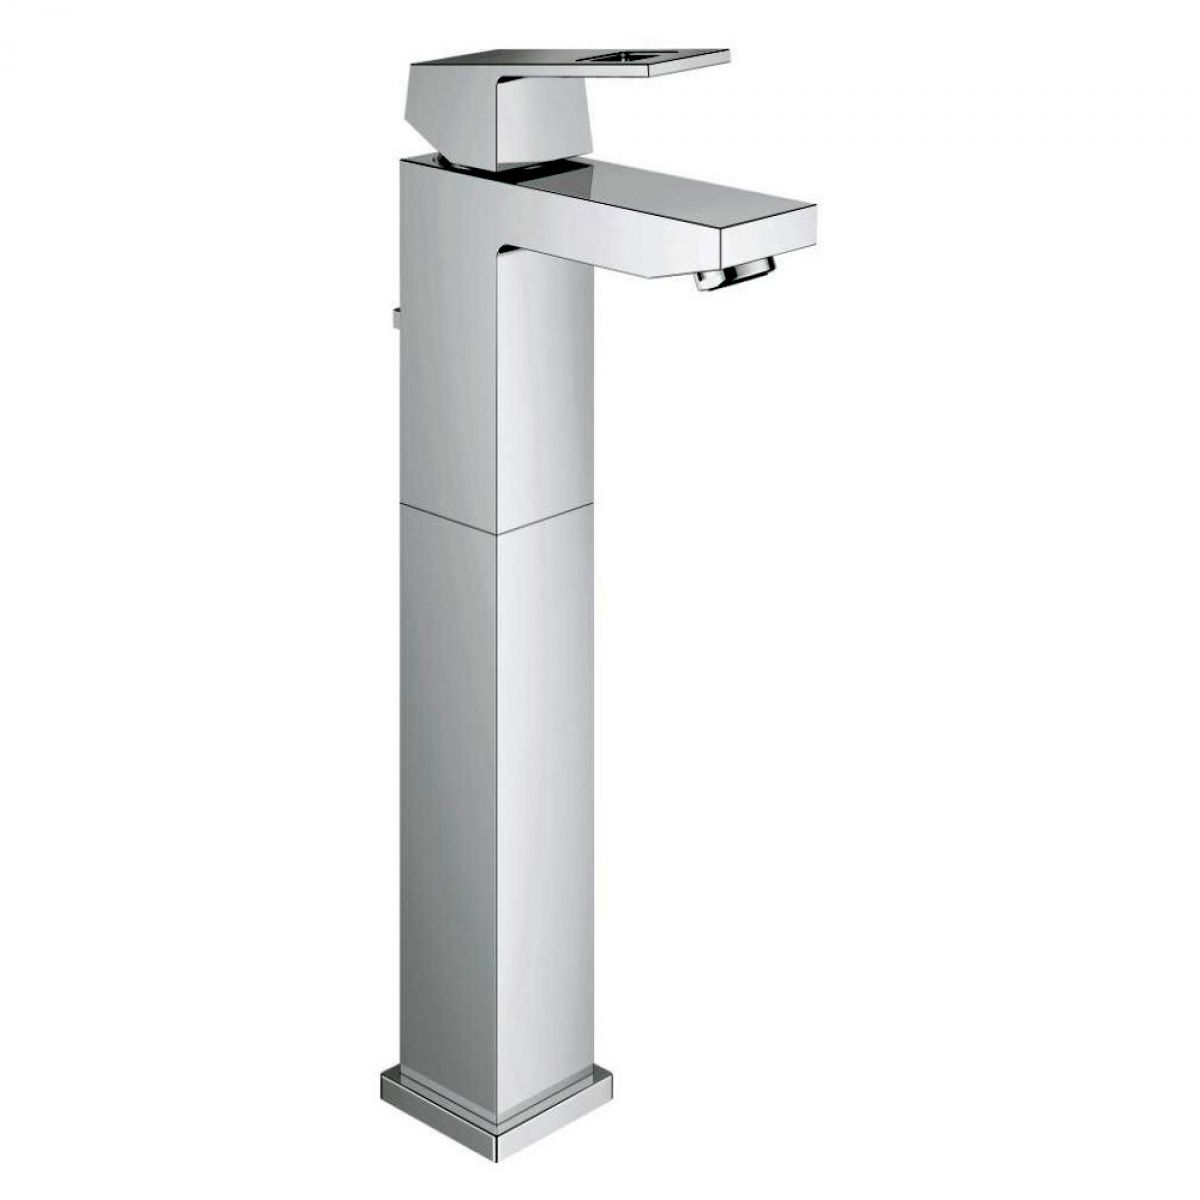 grohe eurocube basin mixer tap uk bathrooms. Black Bedroom Furniture Sets. Home Design Ideas